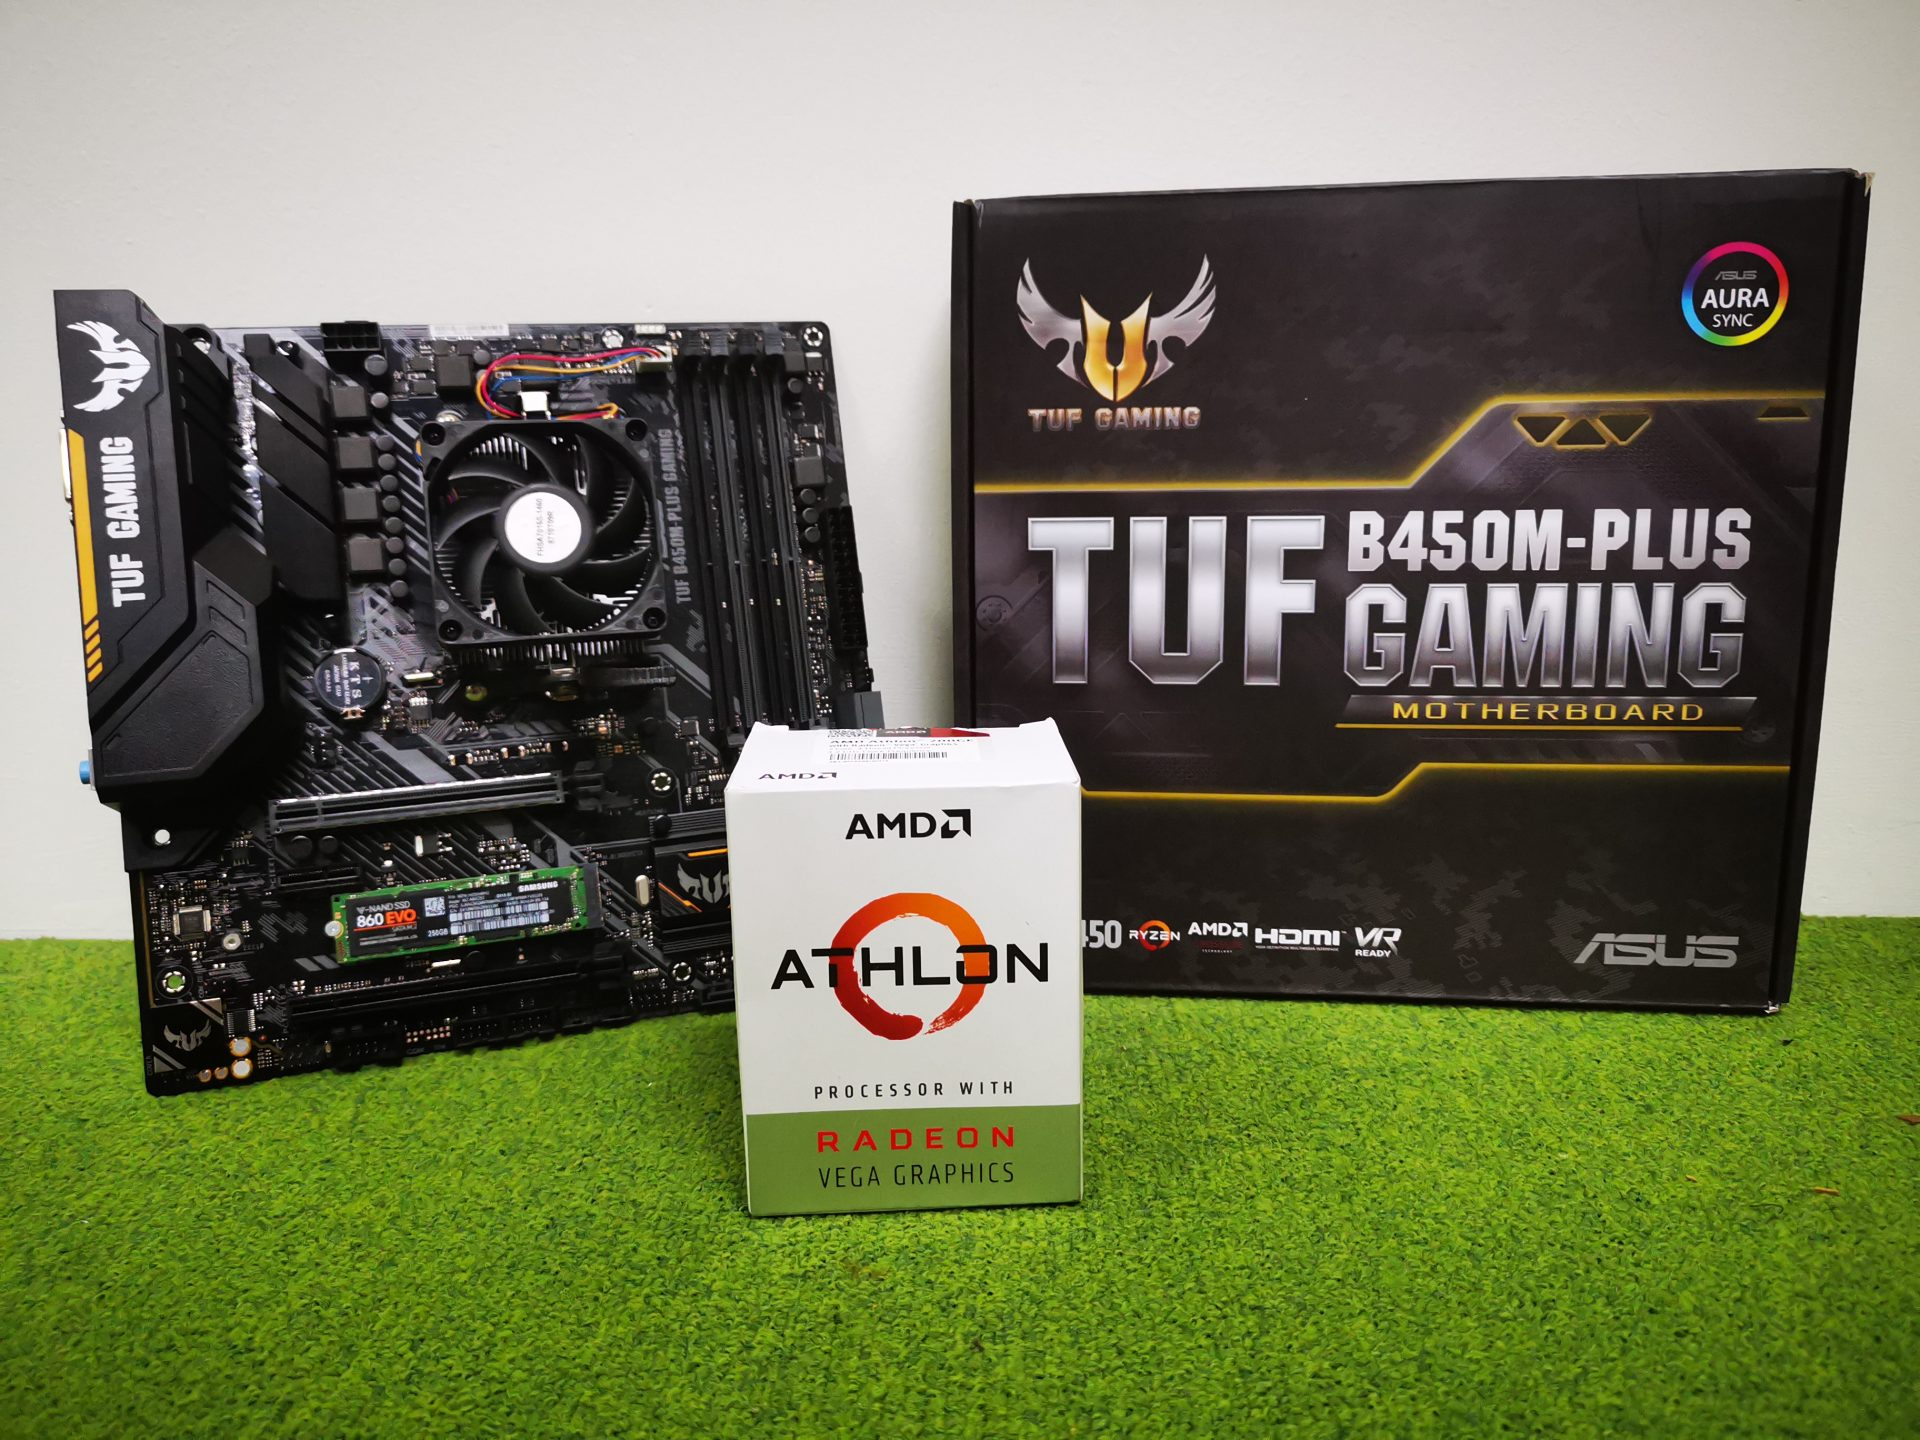 2018 Q4 Budget Pc Build Review Amd Athlon 200ge With Asus B450m Plus Gaming The Tech Revolutionist